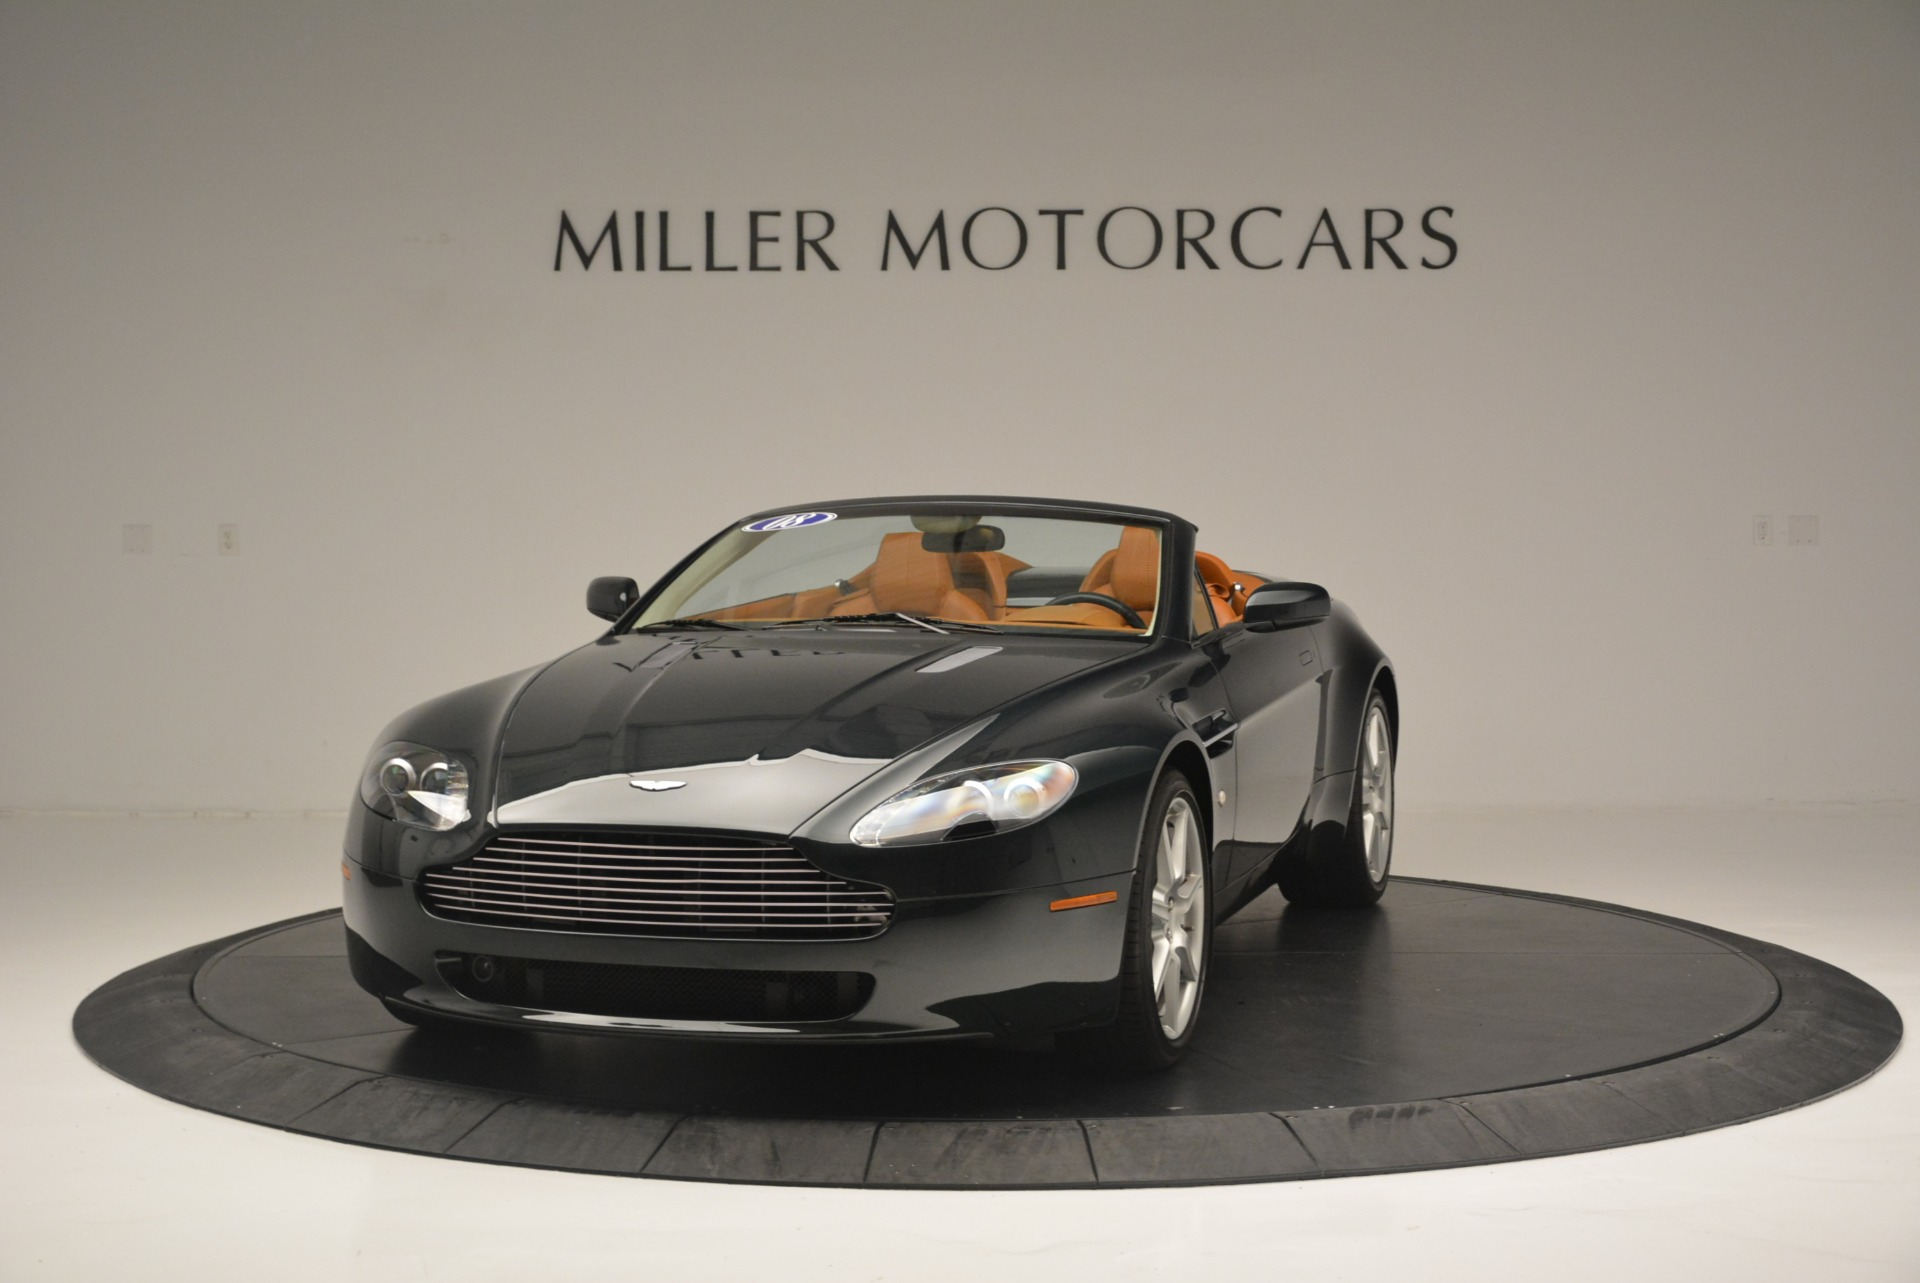 Used 2008 Aston Martin V8 Vantage Roadster for sale Sold at Rolls-Royce Motor Cars Greenwich in Greenwich CT 06830 1